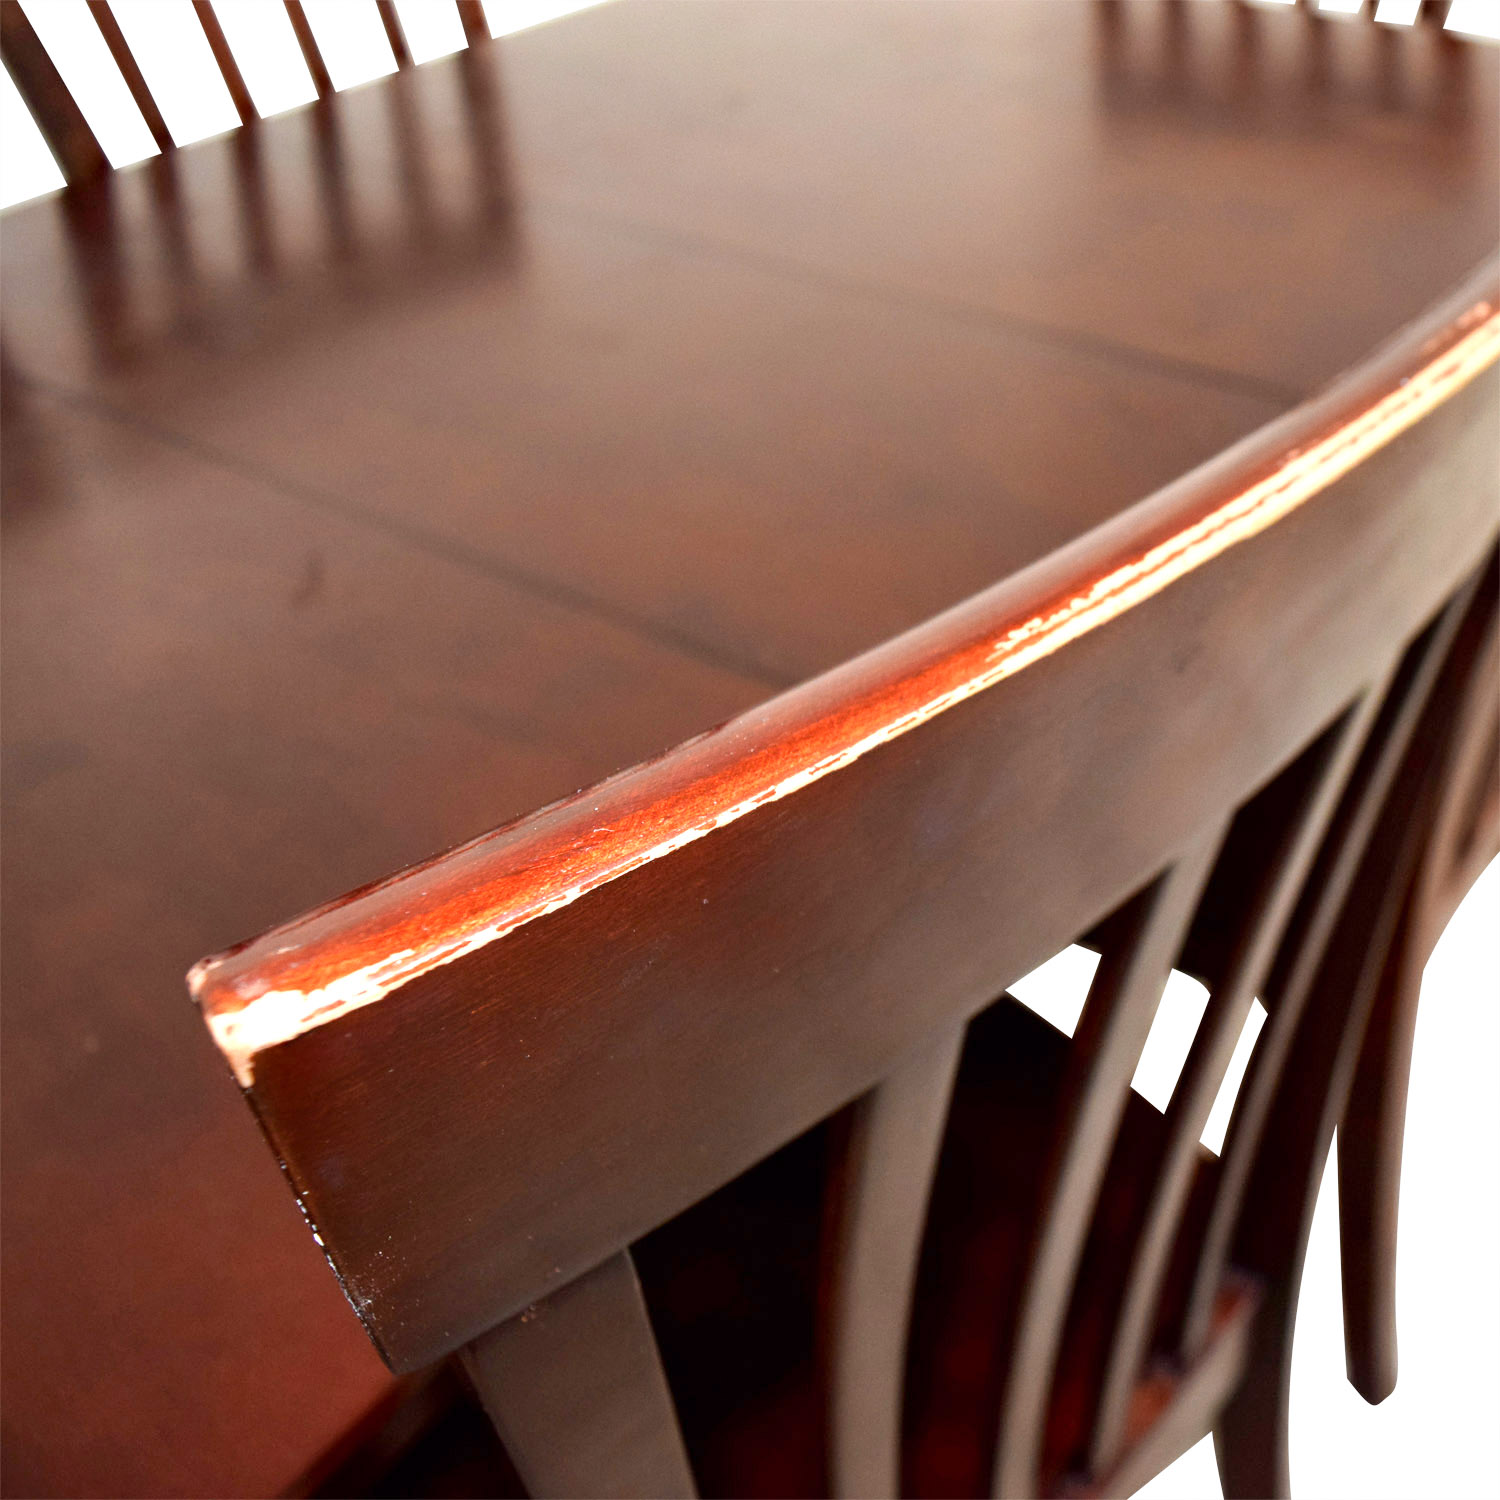 bobs dining room furniture   89% OFF - Bob's Discount Furniture Bob's Furniture Dining ...